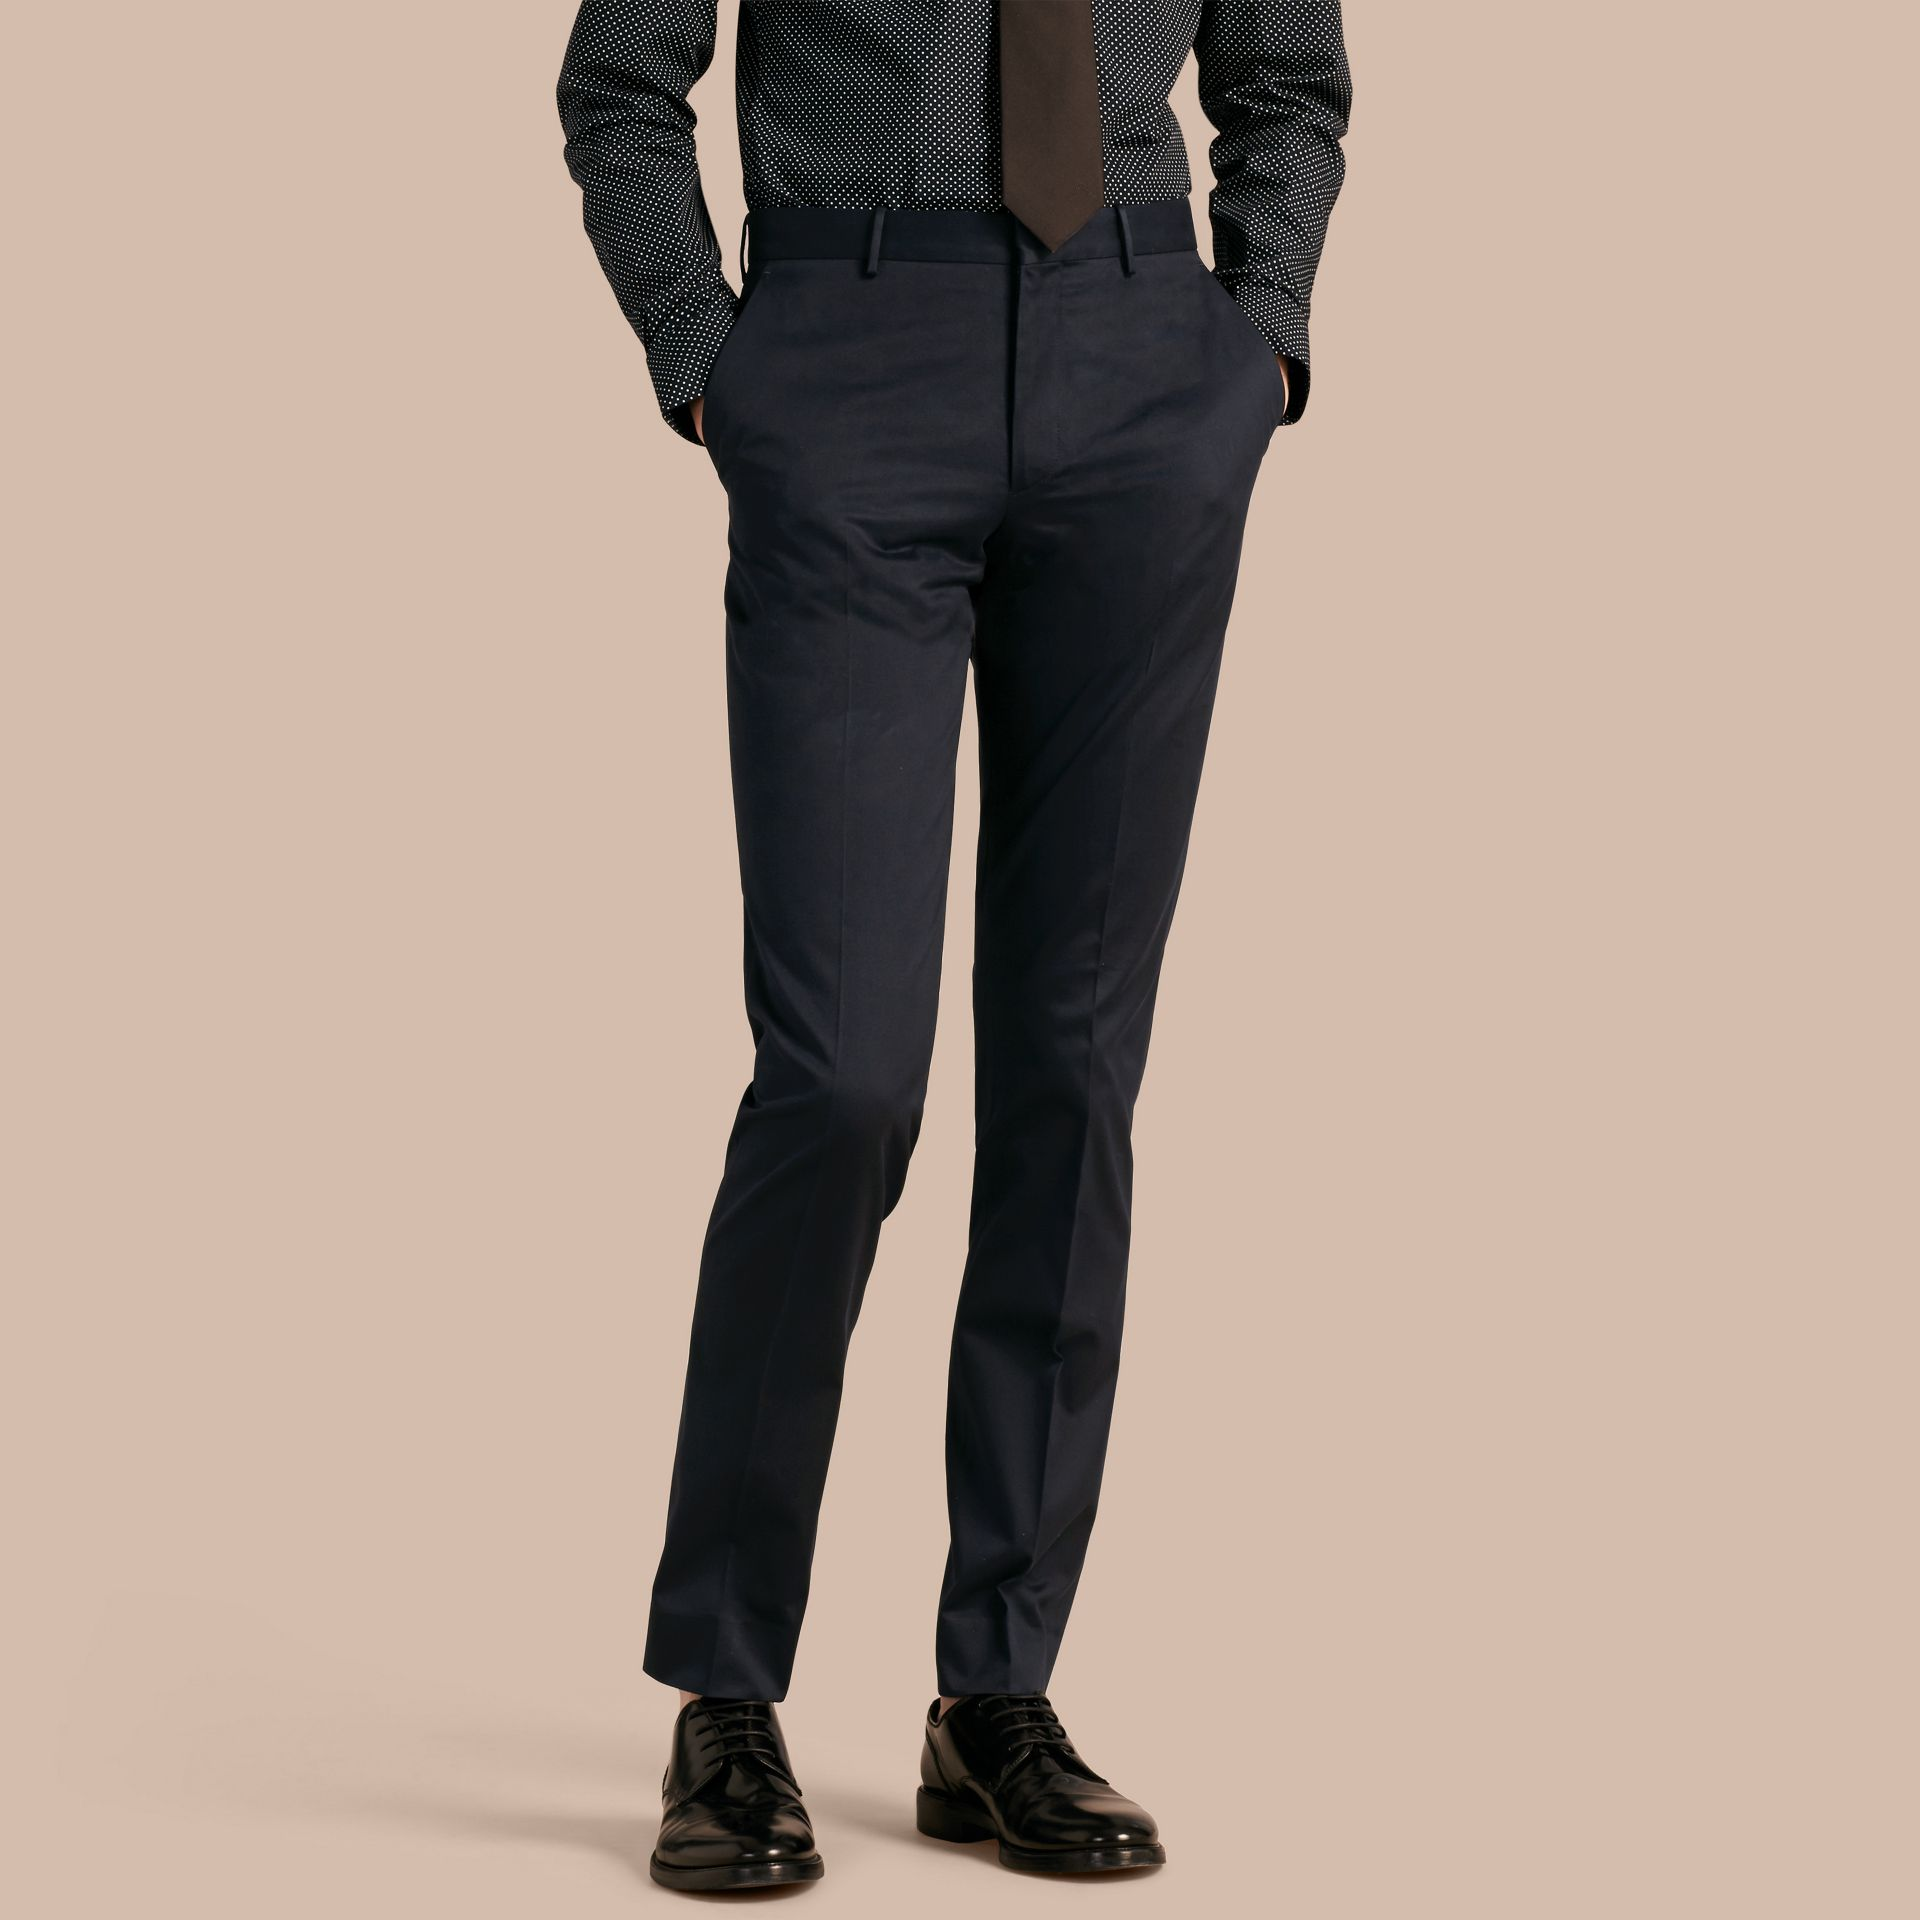 Navy Slim Fit Cotton Trousers Navy - gallery image 1